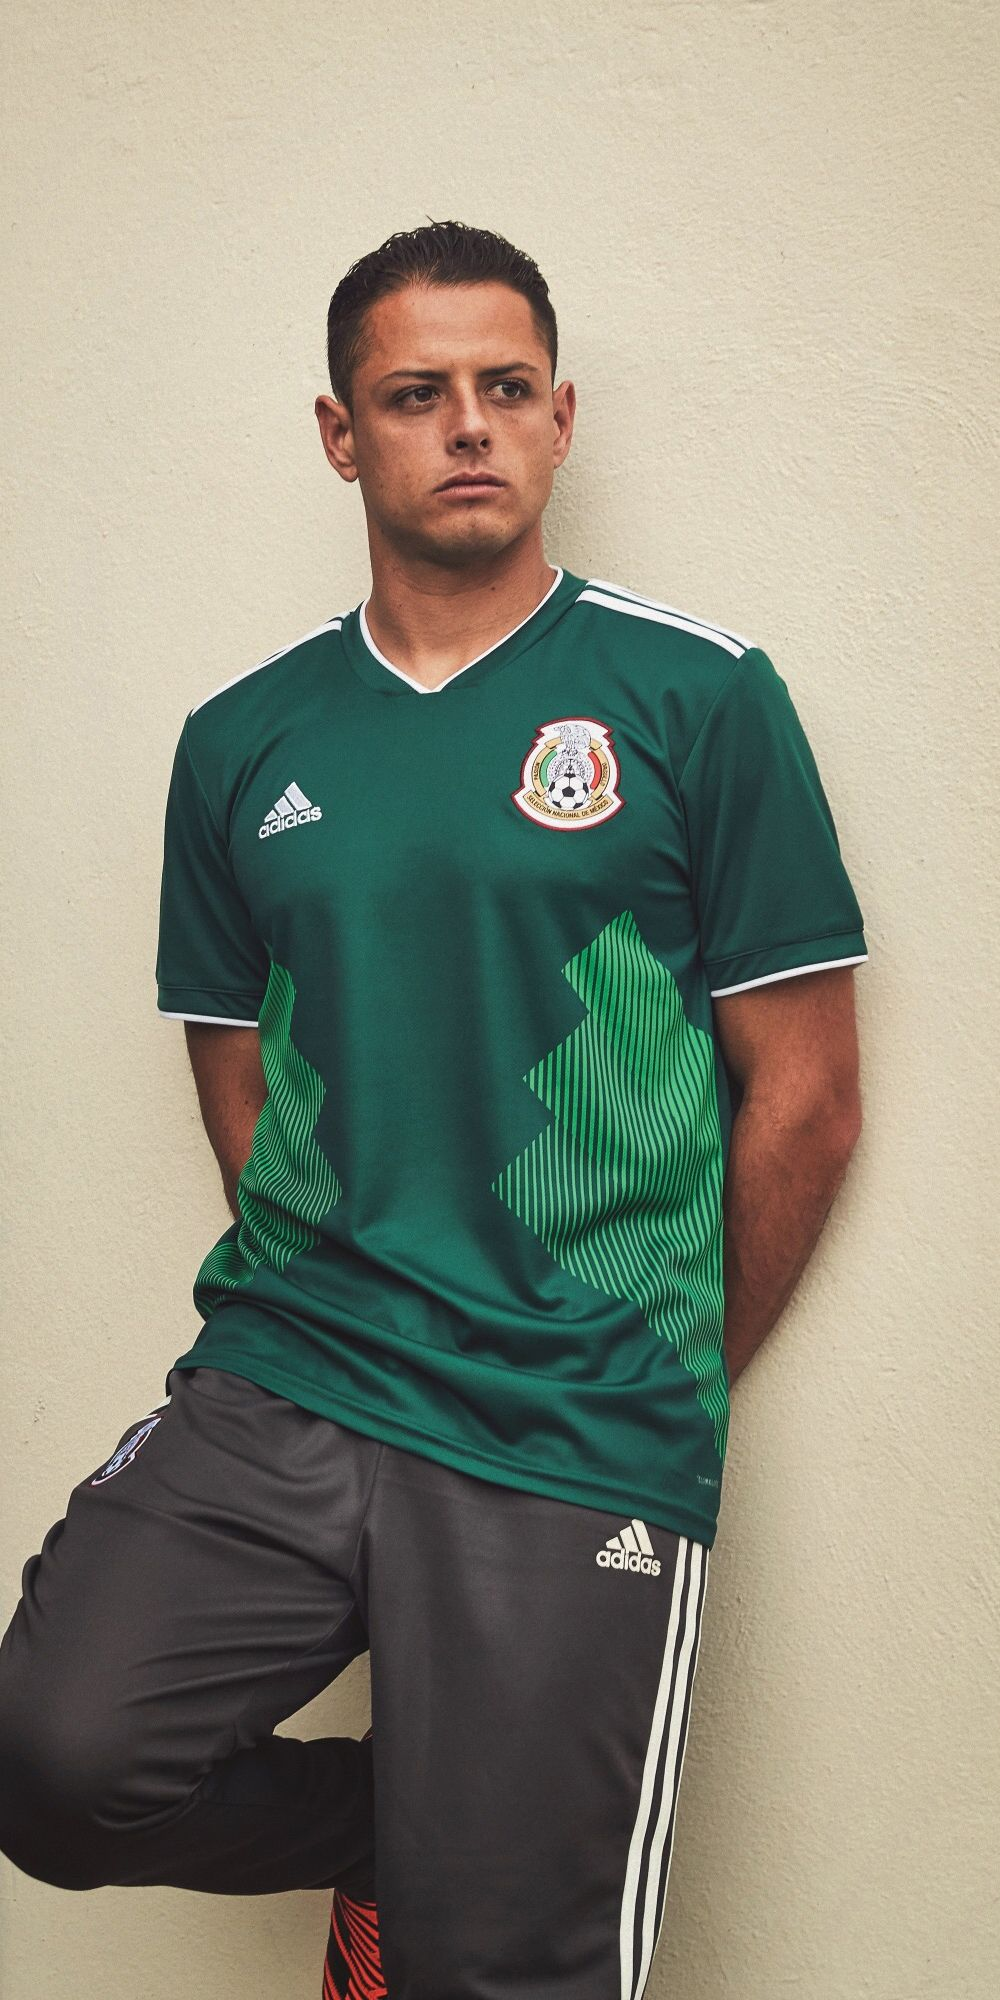 97723043b3c64 Chicharito in the adidas 2018 Mexico home jersey